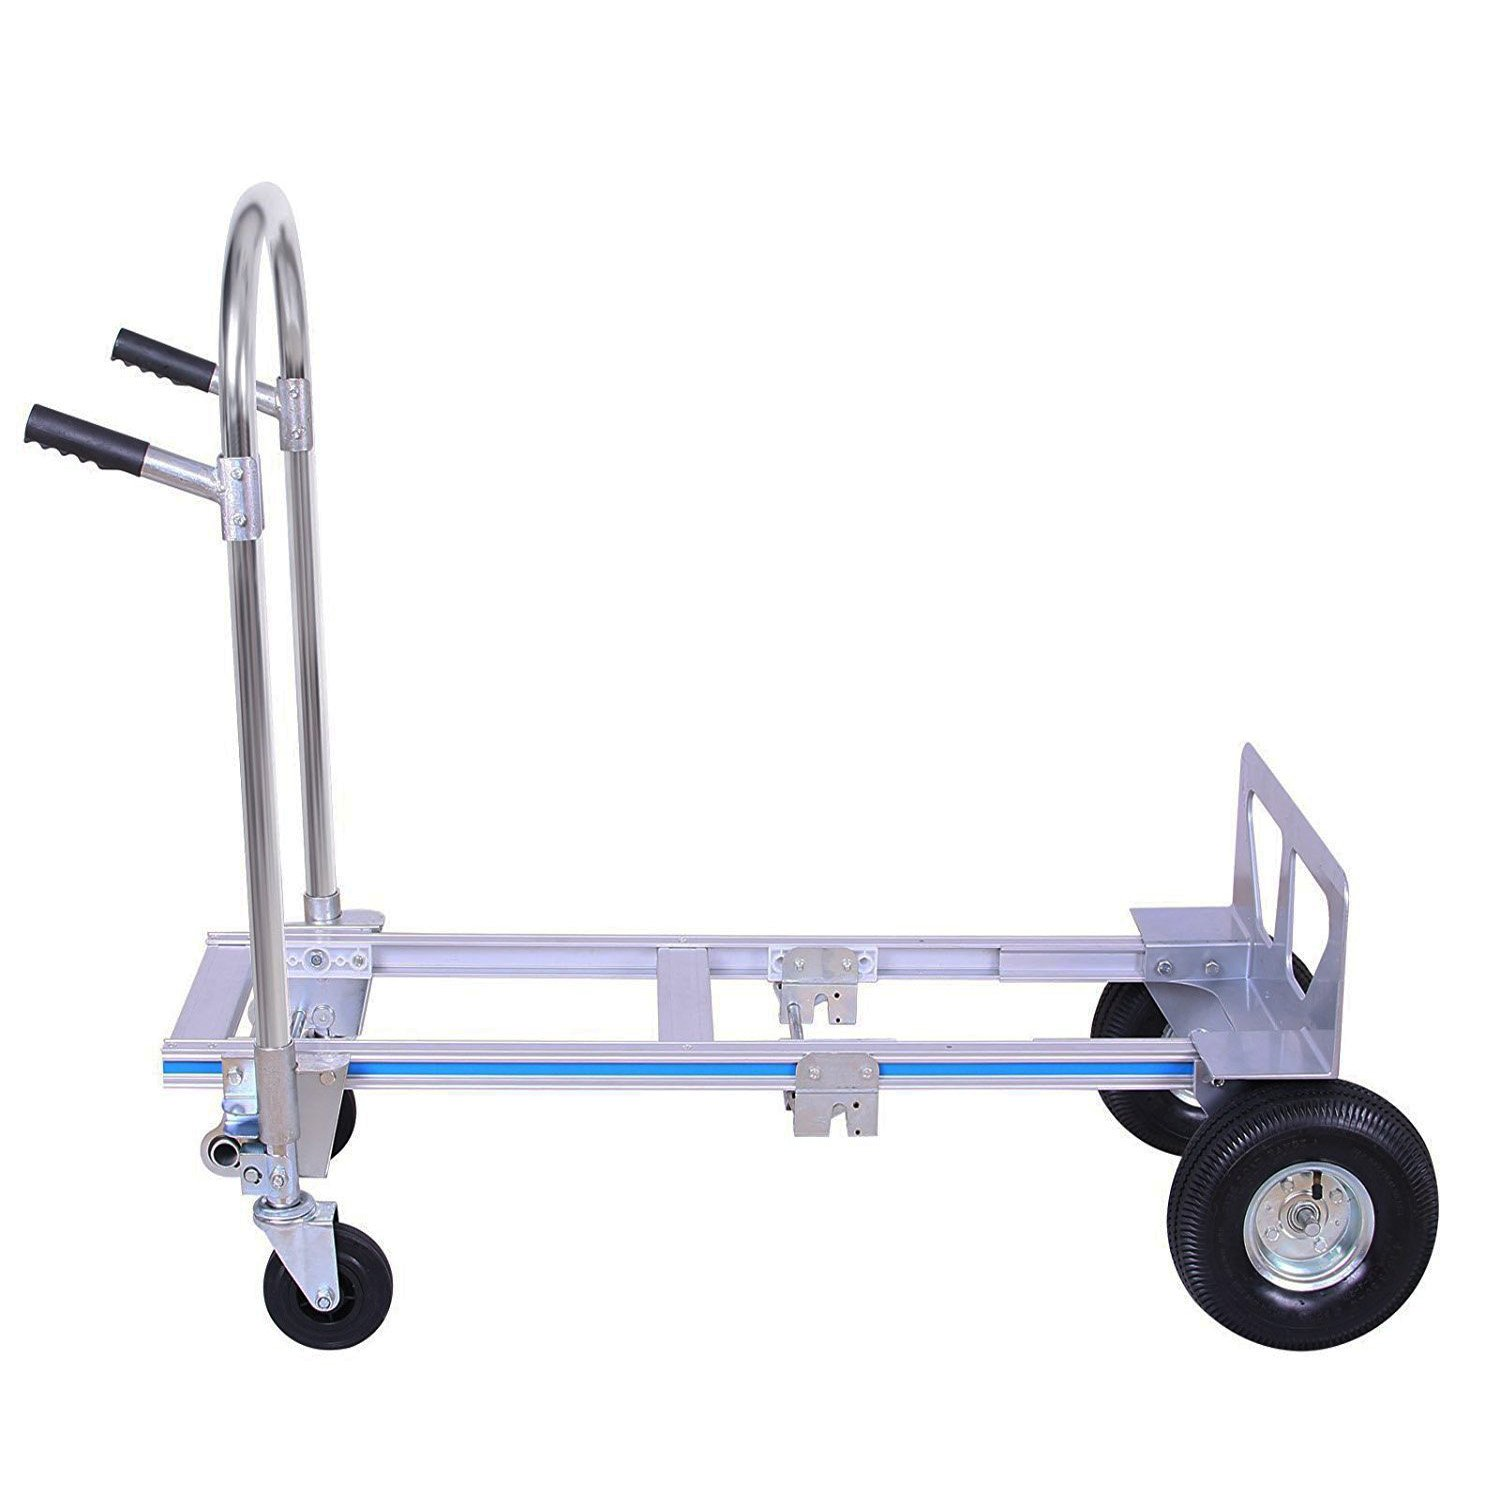 Z-bond Aluminum Hand Truck 770LBS Folding Hand Truck 2 IN 1 Hand Cart Dolly with Flat Free Wheels (770LB hand truck) by Z-bond